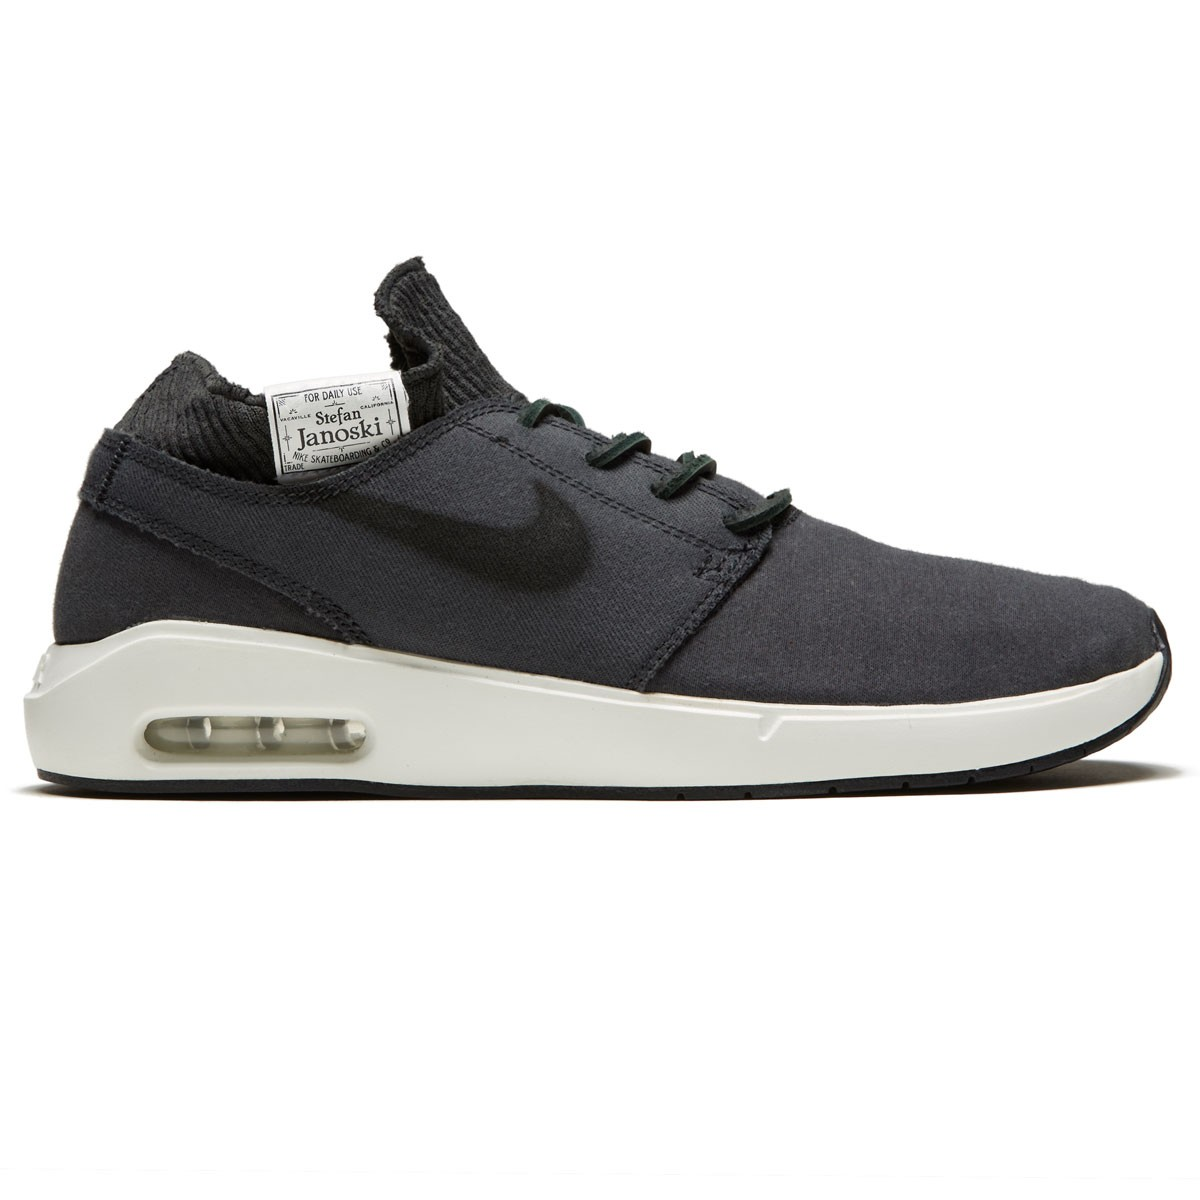 4d9bac49a7 Nike SB Air Max Janoski 2 Premium Shoes - Anthracite/Black/White